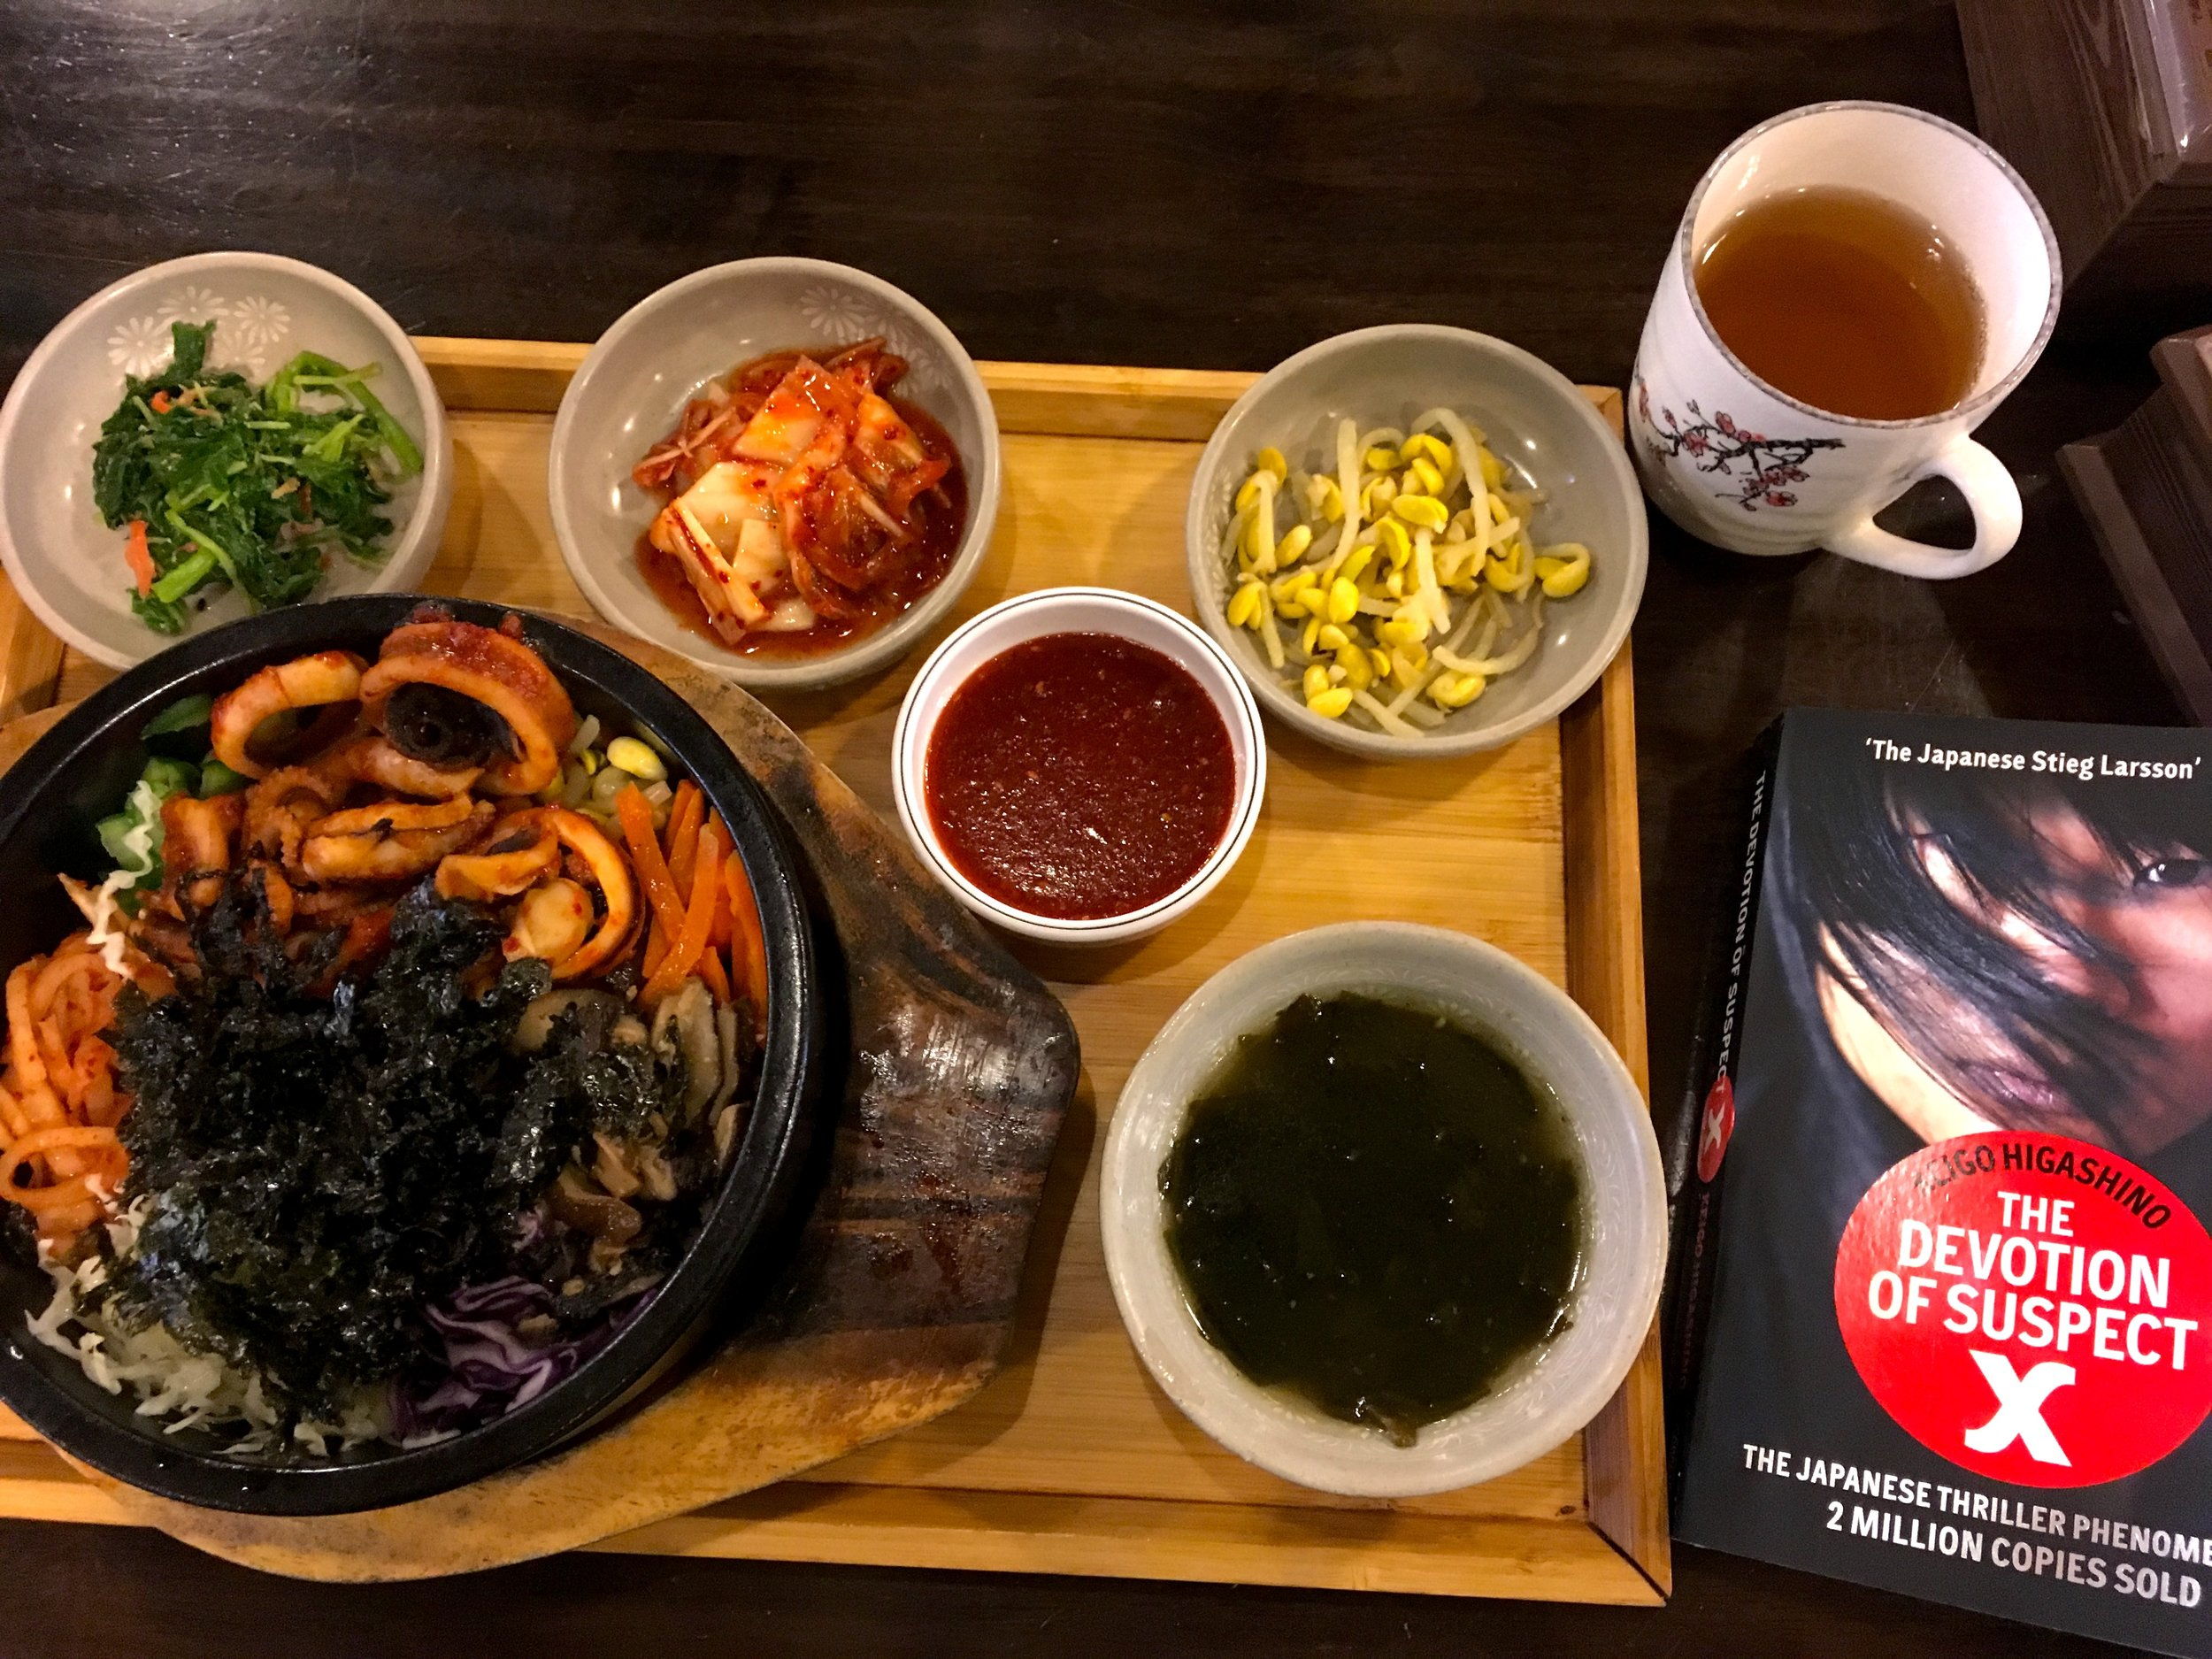 A Korean meal with a Japanese novel. I think the Bibimbap at Oishii (there are several branches in Petaling Jaya) is the best in town and I regularly go there to get my favourite Korean dish. They don't skimp on the vegetables, the price is right, and the sauce is yummy. Highly recommended!